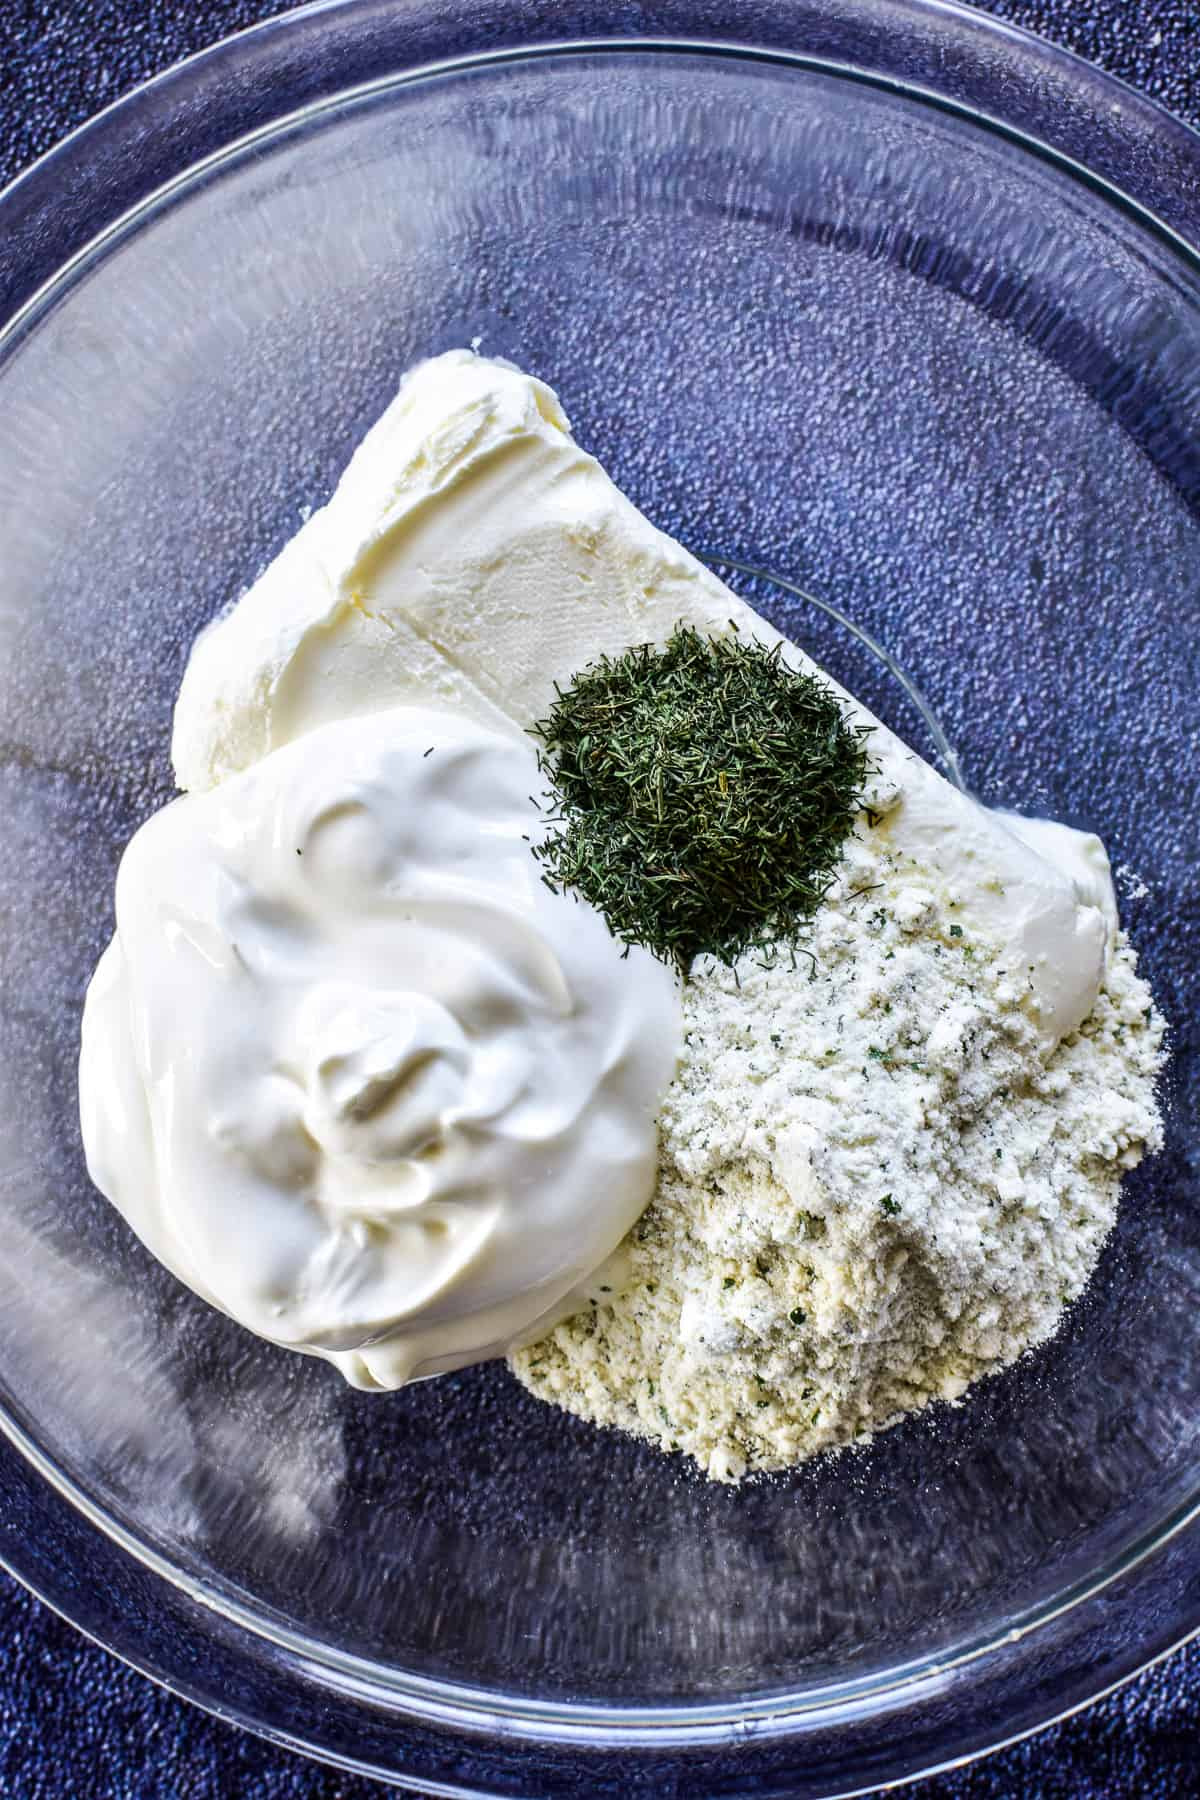 Cream cheese, sour cream, ranch dressing mix, and dill weed in a mixing bowl